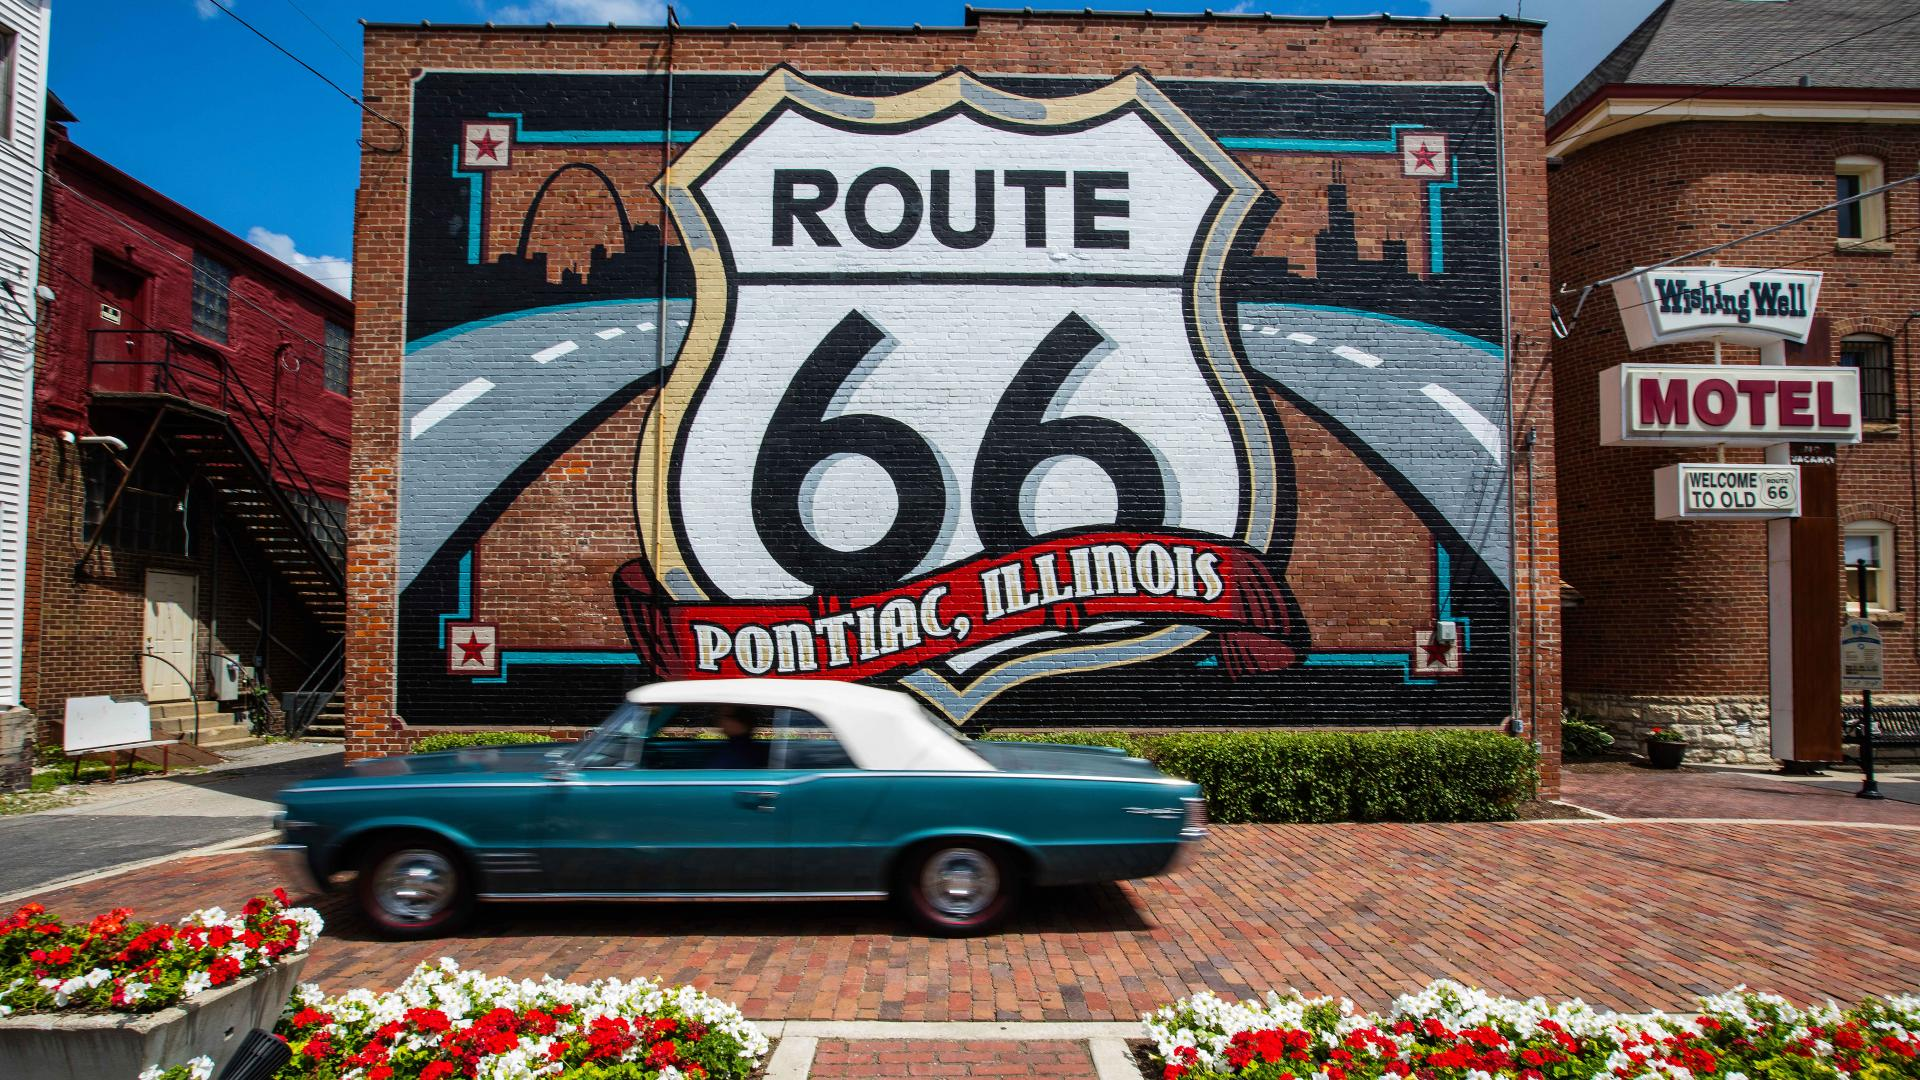 Route 66 in Illnois on a great American road trip